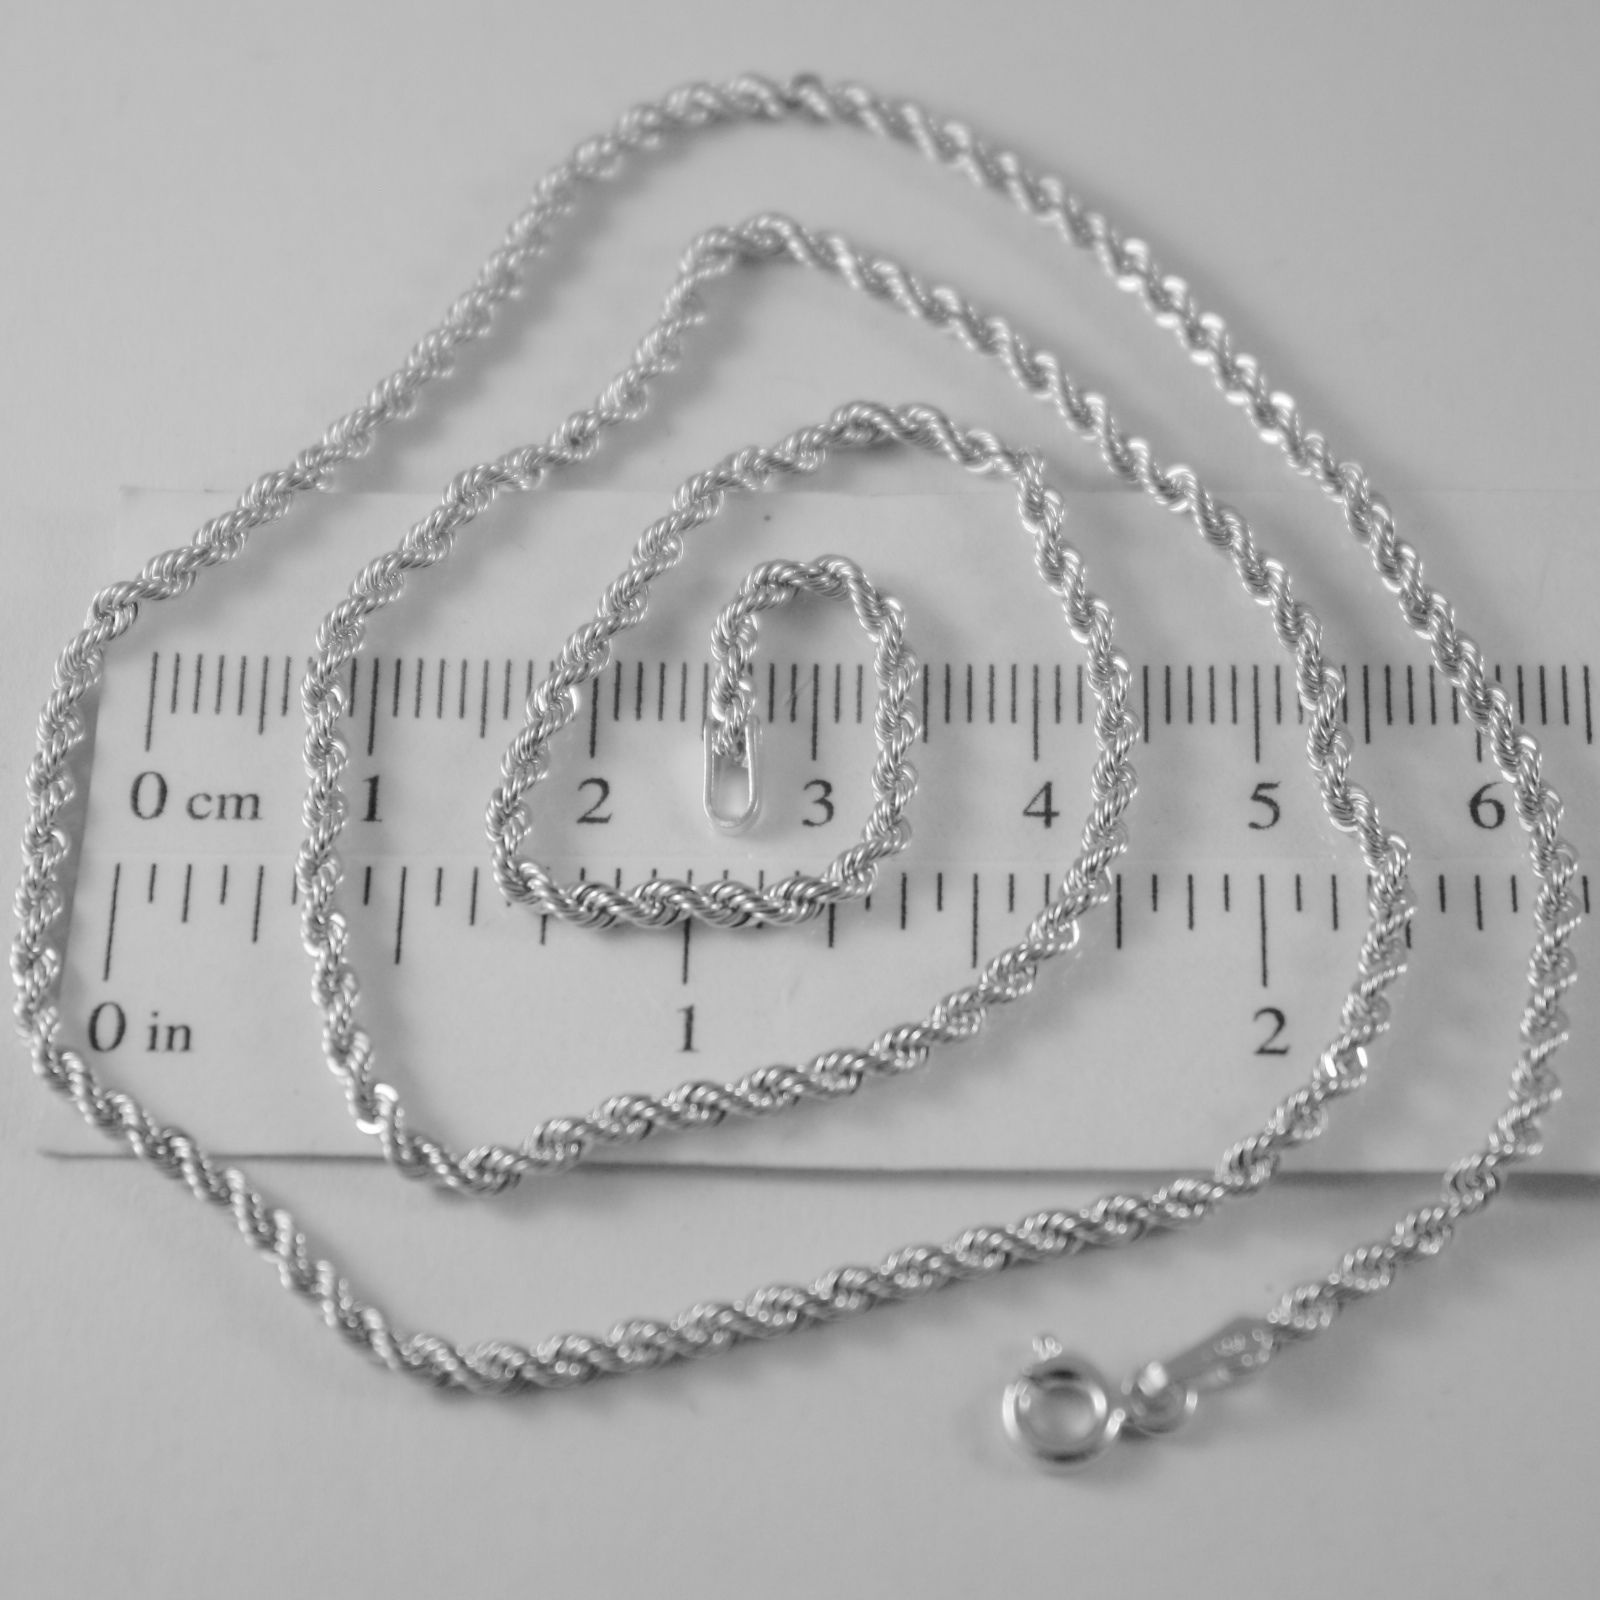 18K WHITE GOLD CHAIN NECKLACE, BRAID ROPE MESH 19.69 INCHES 2.5 MM MADE IN ITALY